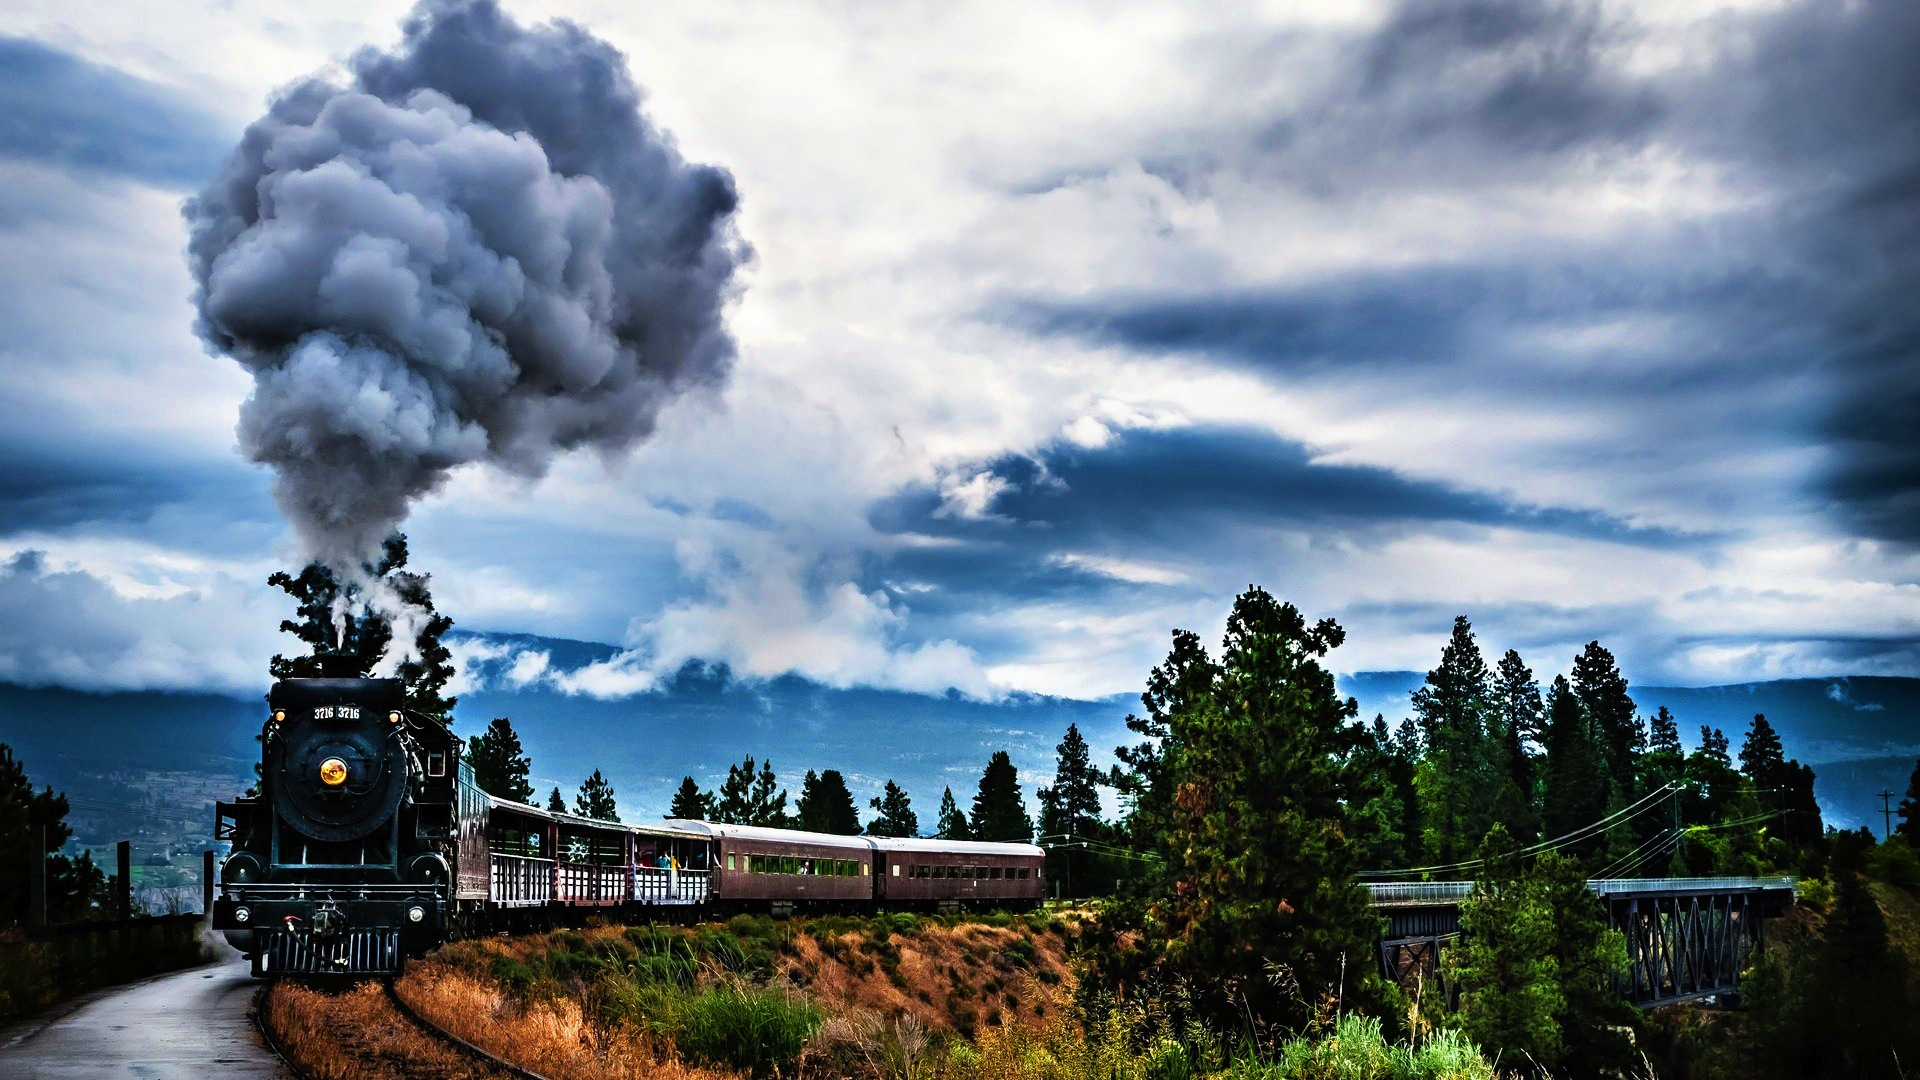 Awesome Locomotive Wallpaper